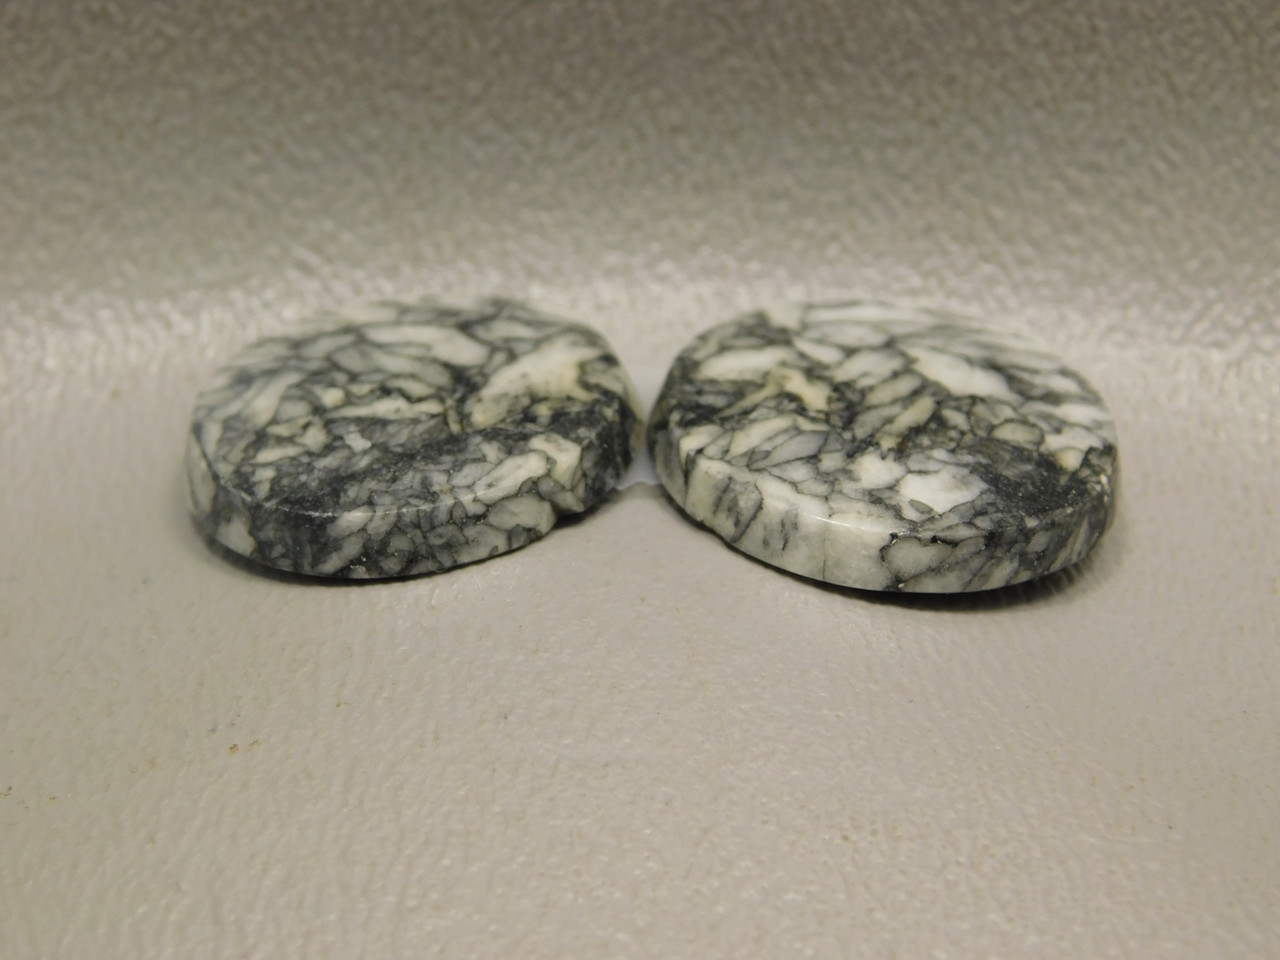 Pinolith or Pinolite Austria Matched Pair Stone Cabochons #9